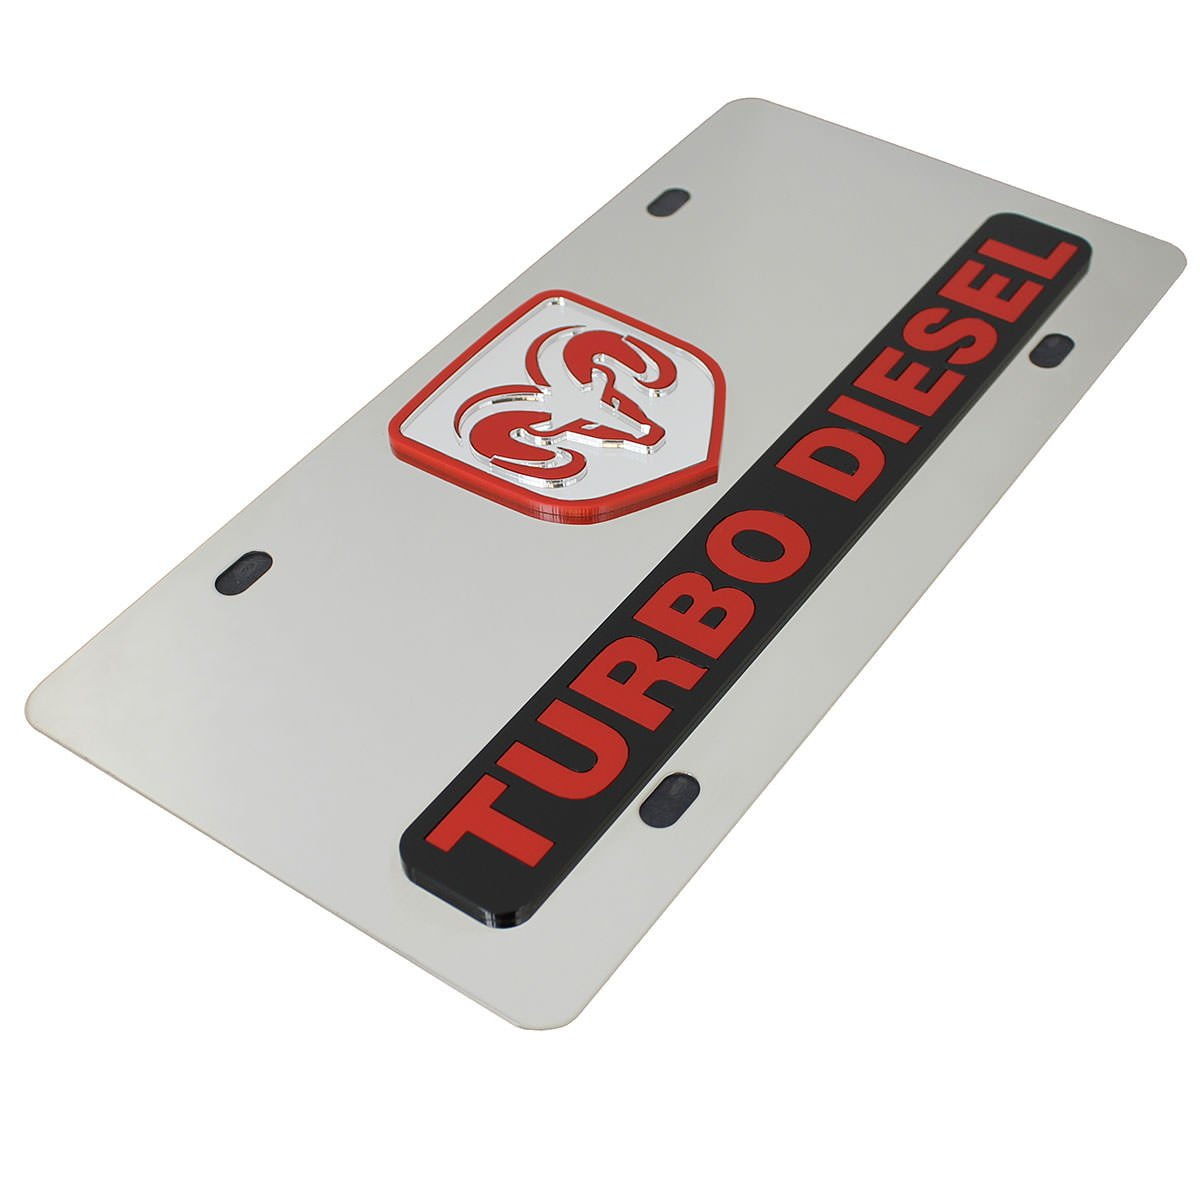 Amazon.com: Dodge Red Ram Logo + Turbo Diesel Name Badge Polished Stainless Steel License Plate: Automotive